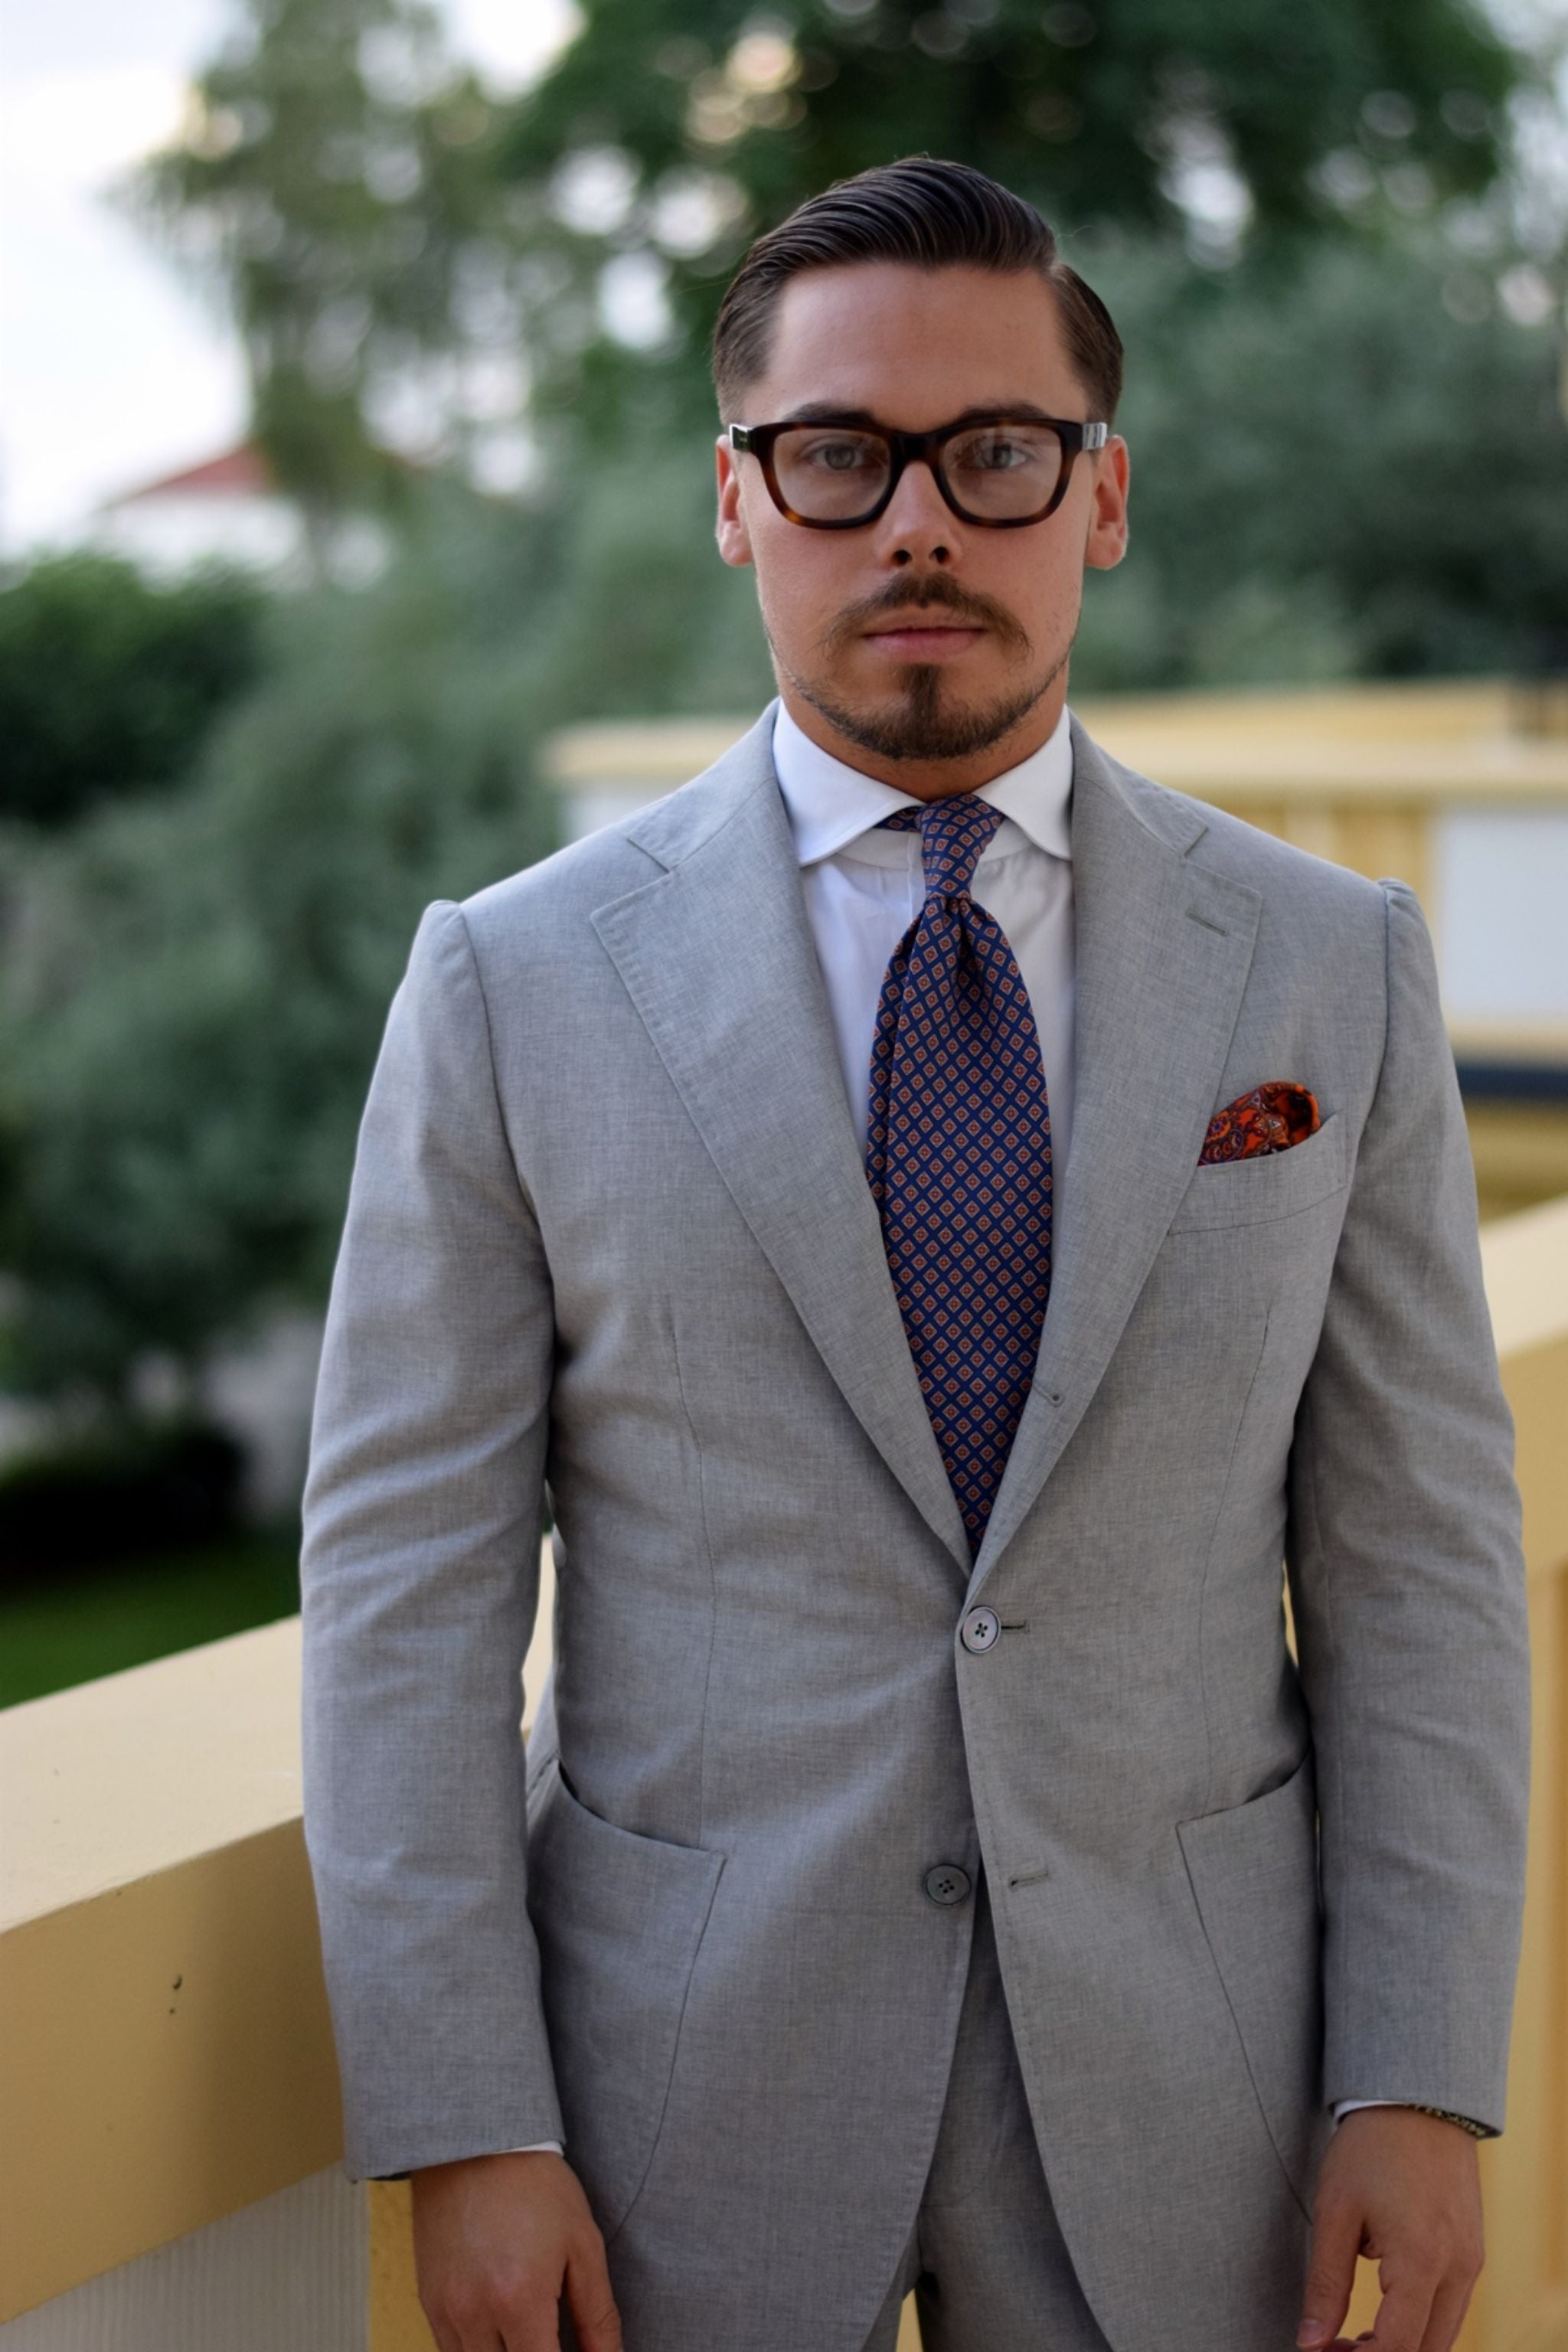 Light gray suit with orange accessories - Suit and tie by Vaatturilike Sauma with DLA white oxford shirt